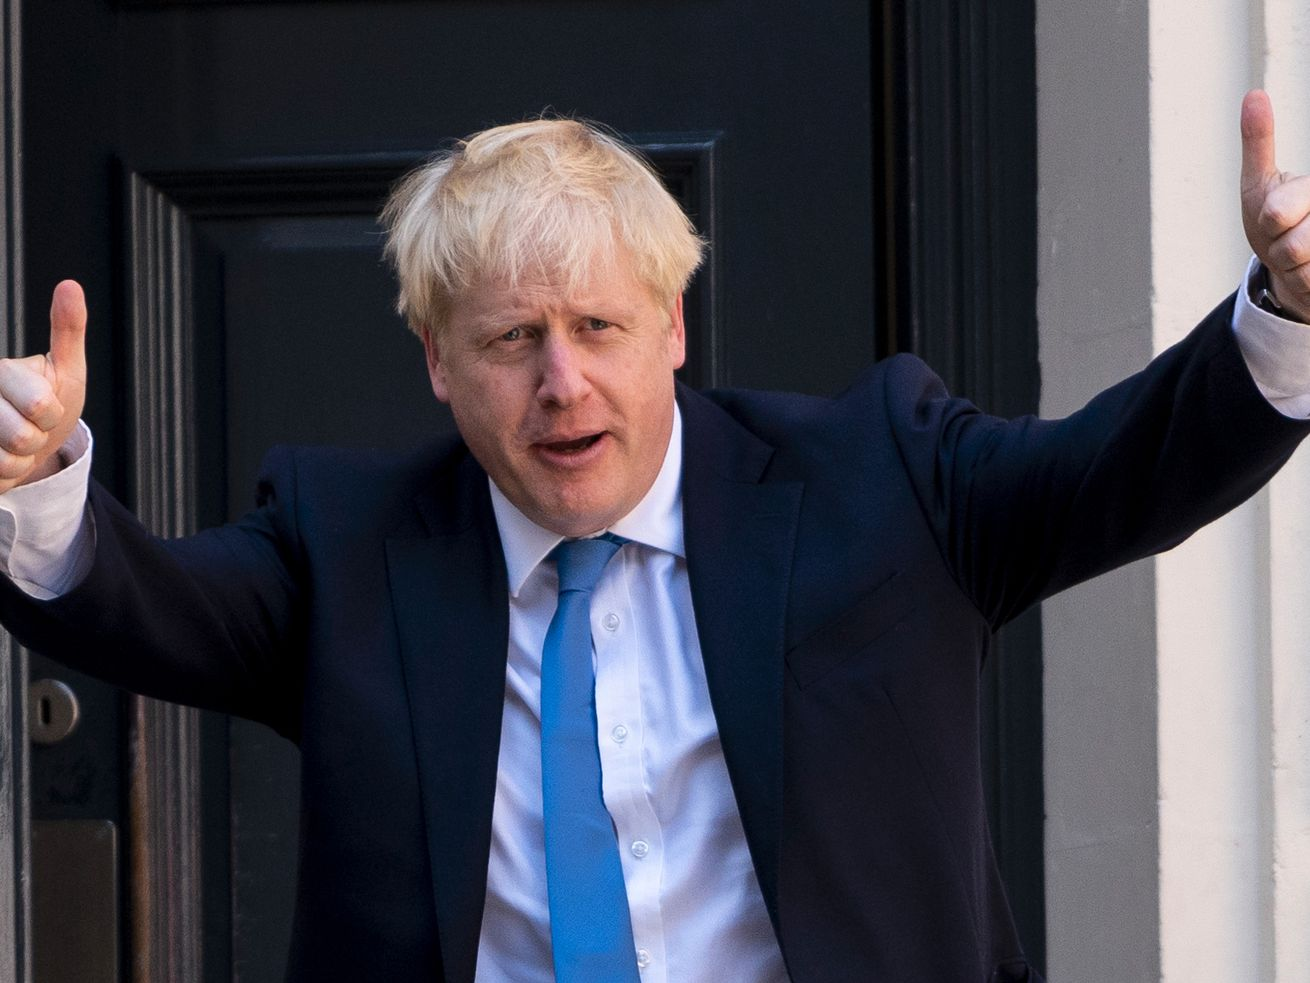 New UK Conservative Party leader and incoming Prime Minister Boris Johnson arrives at the Conservative Party headquarters in central London on July 23, 2019.